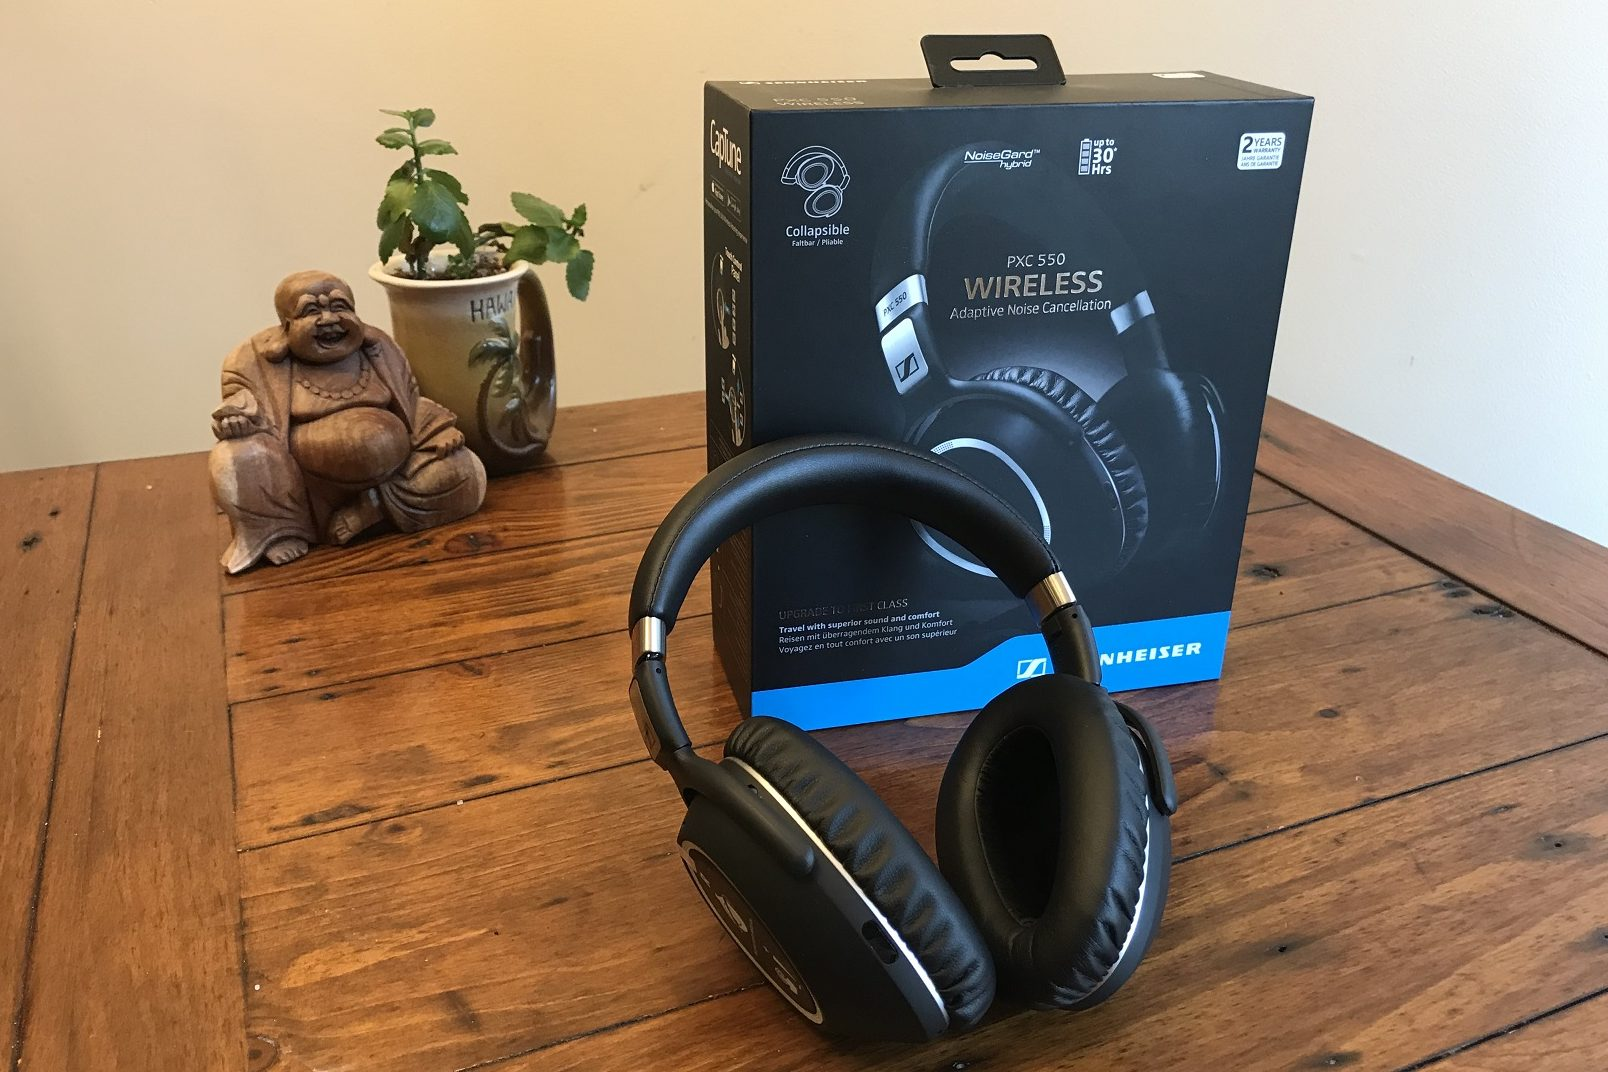 6aa9997ae1b Review: Sennheiser PXC 550 Wireless Headphones | Best Buy Blog